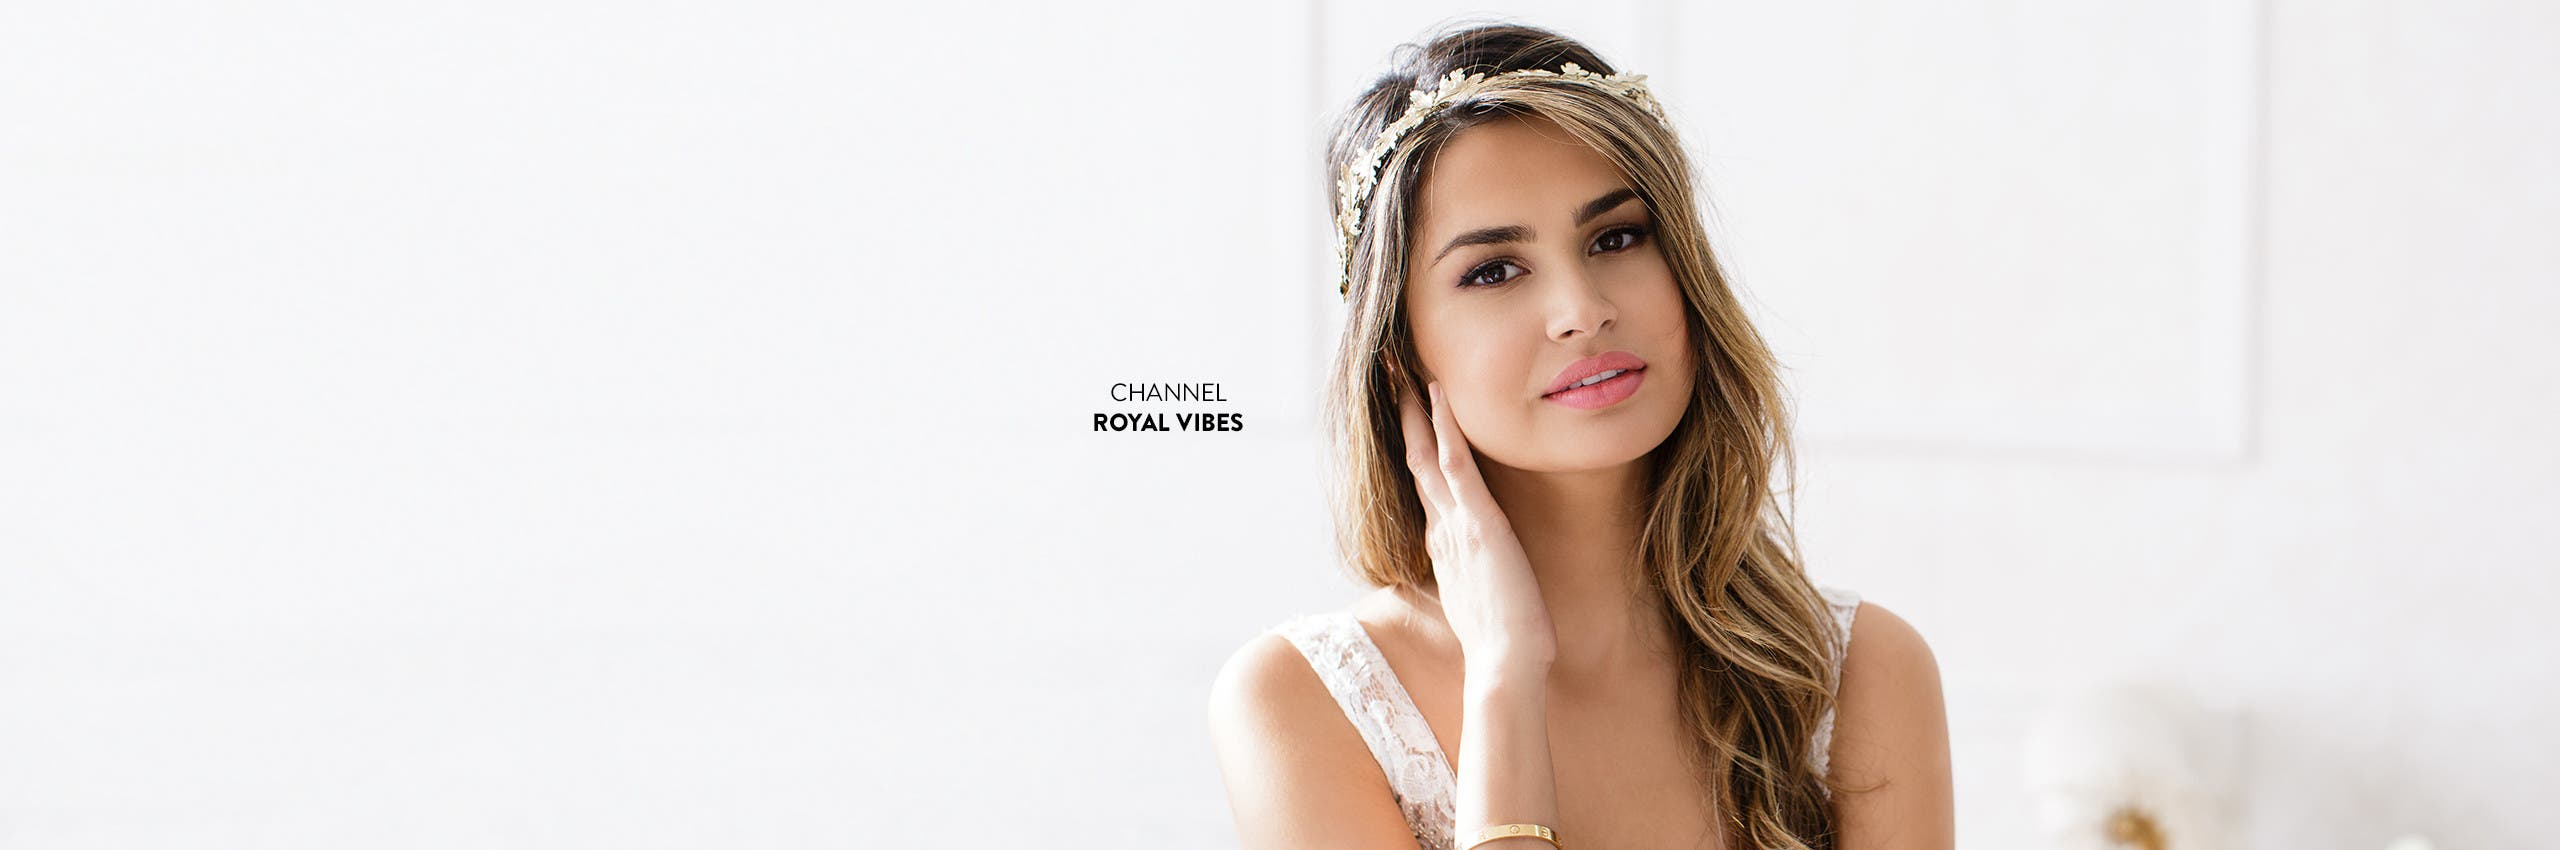 Wedding crowns and other accessories for channeling royal vibes.